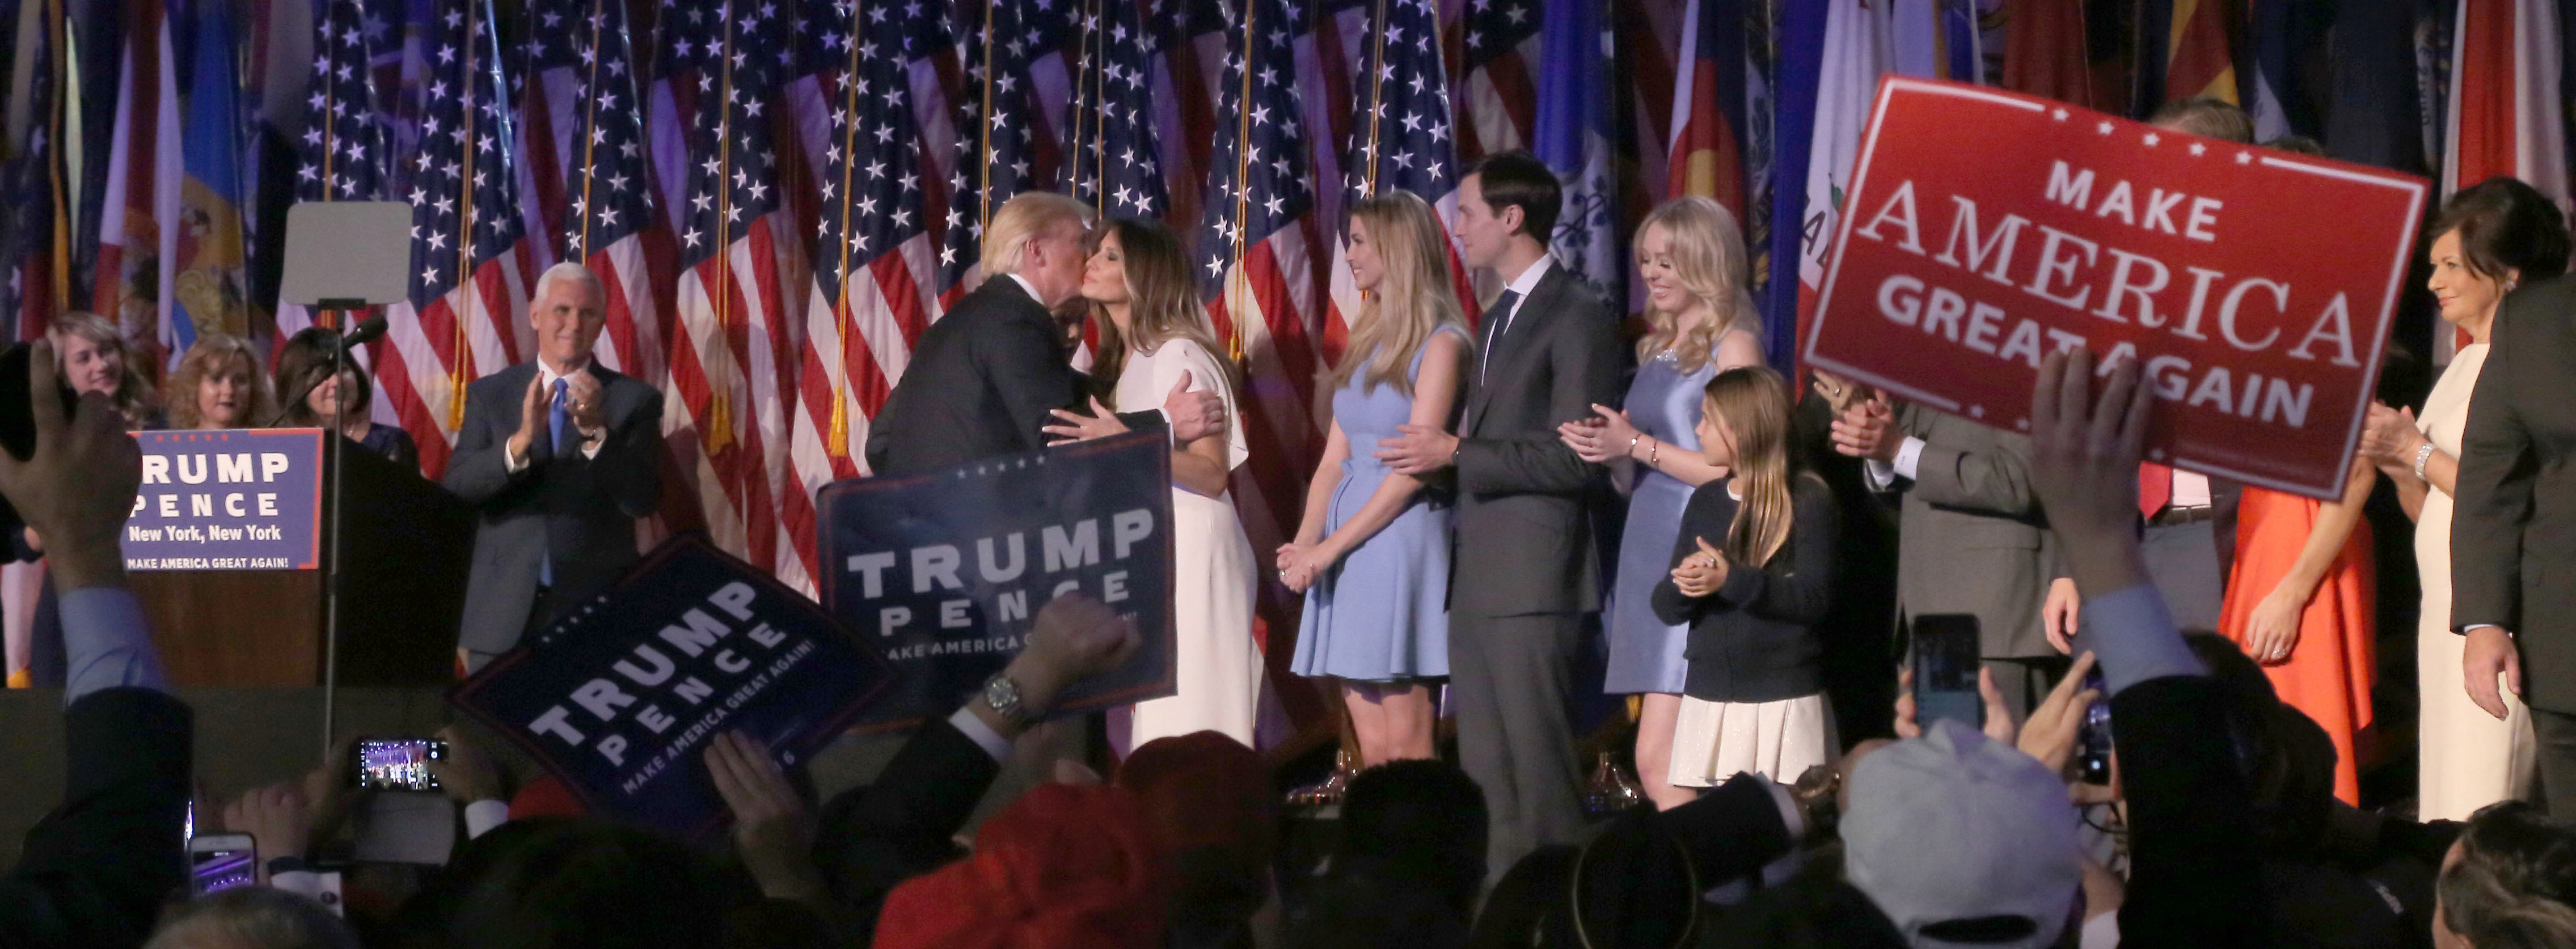 Donald Trump kisses his wife and future First Lady, Melania, but many feel Ivanka will be her father's real influence